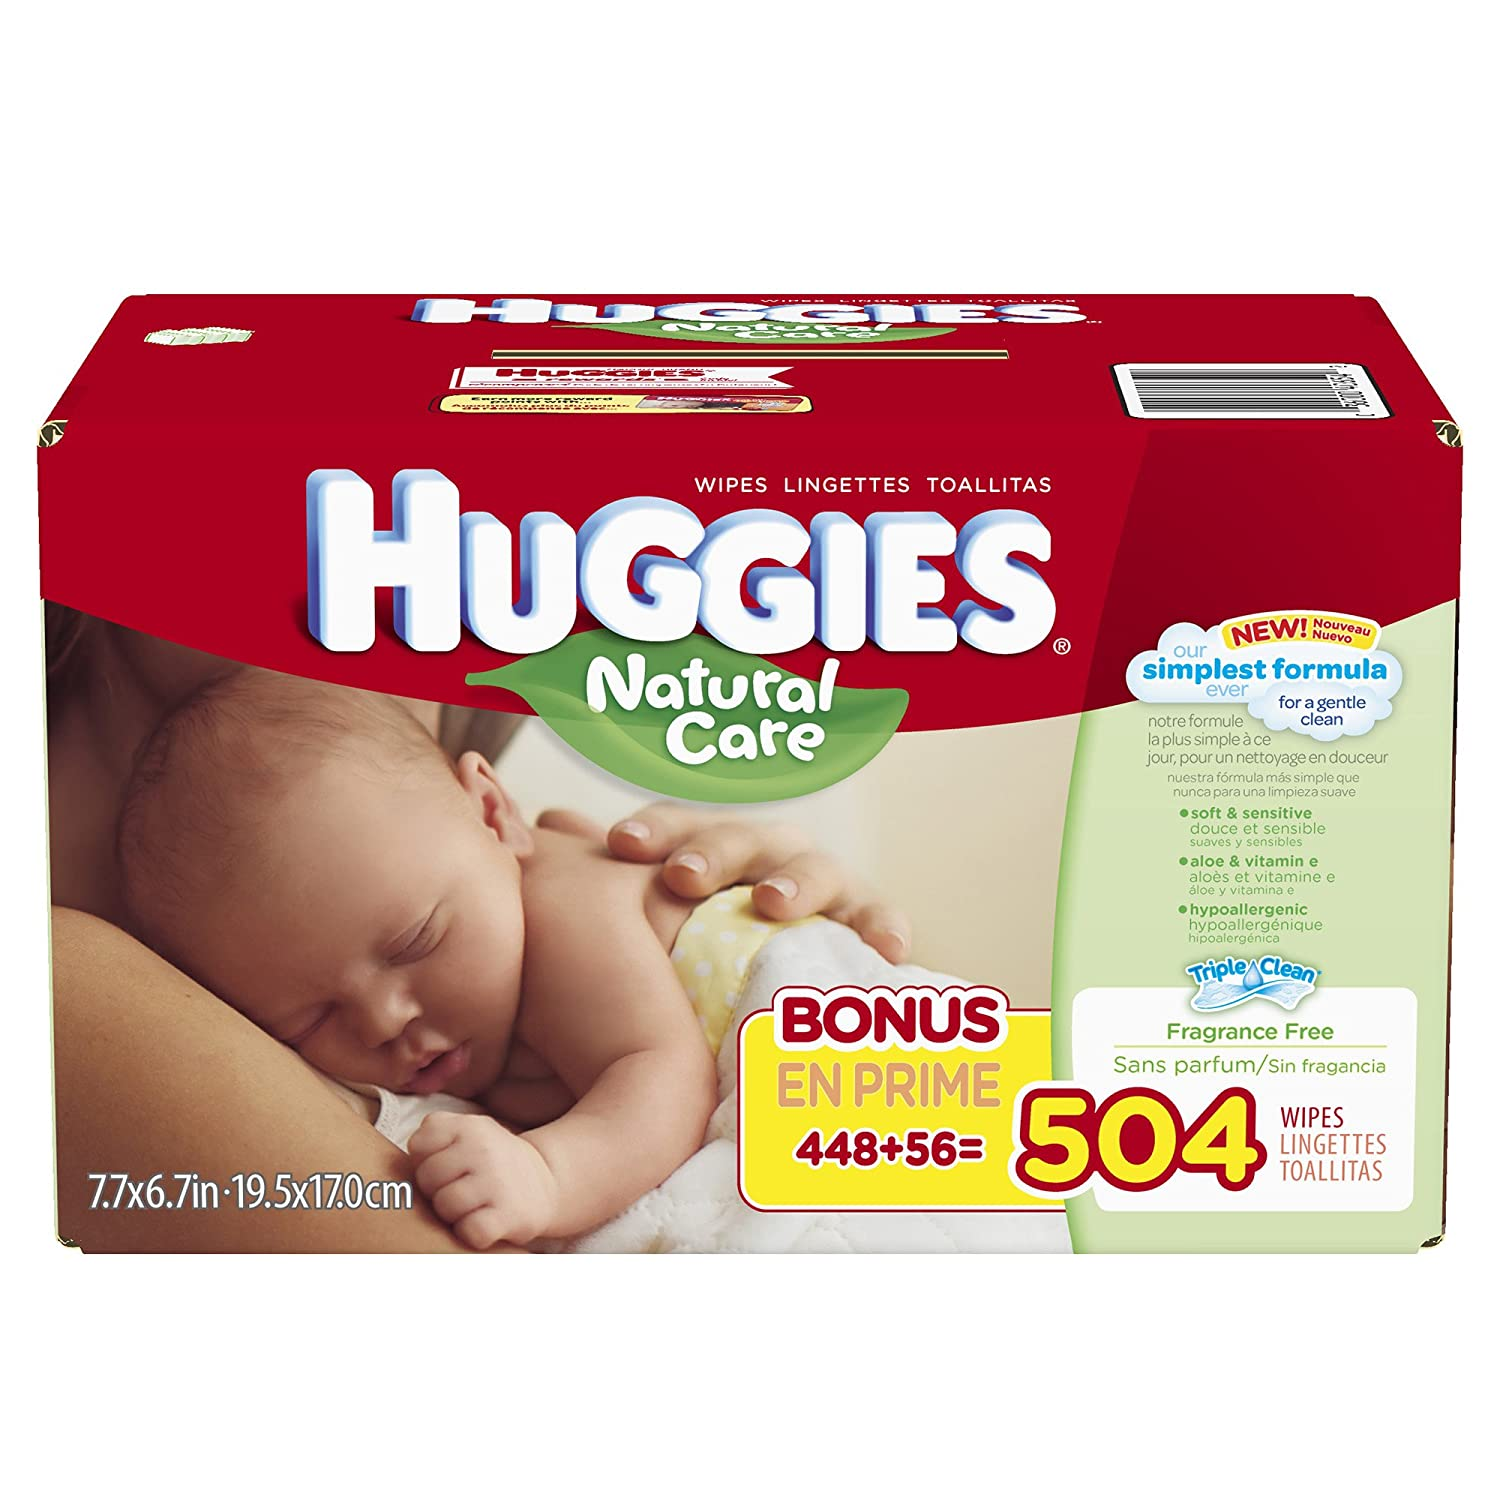 Amazon.com: Huggies Natural Care Baby Wipes Case - 616 ct: Health & Personal Care